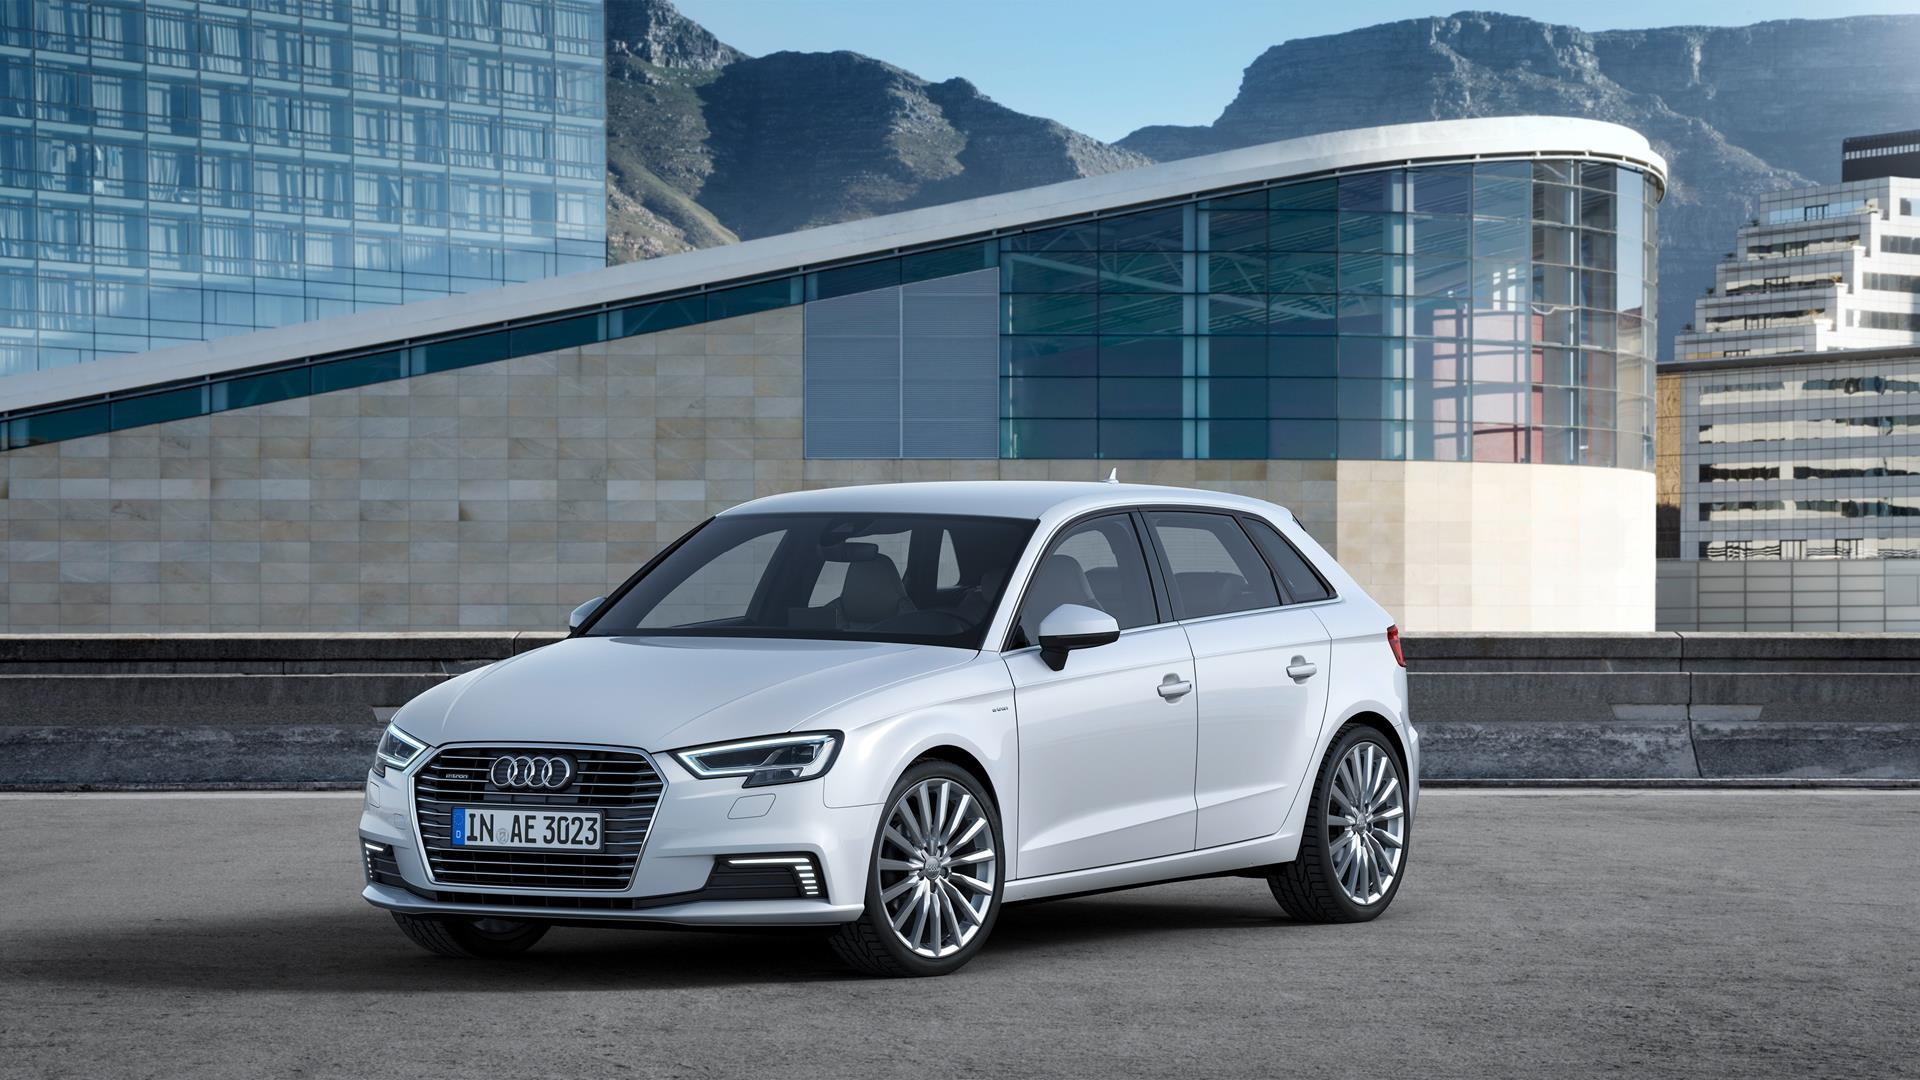 2017 audi a3 sportback e tron technical specifications and data engine dimensions and. Black Bedroom Furniture Sets. Home Design Ideas